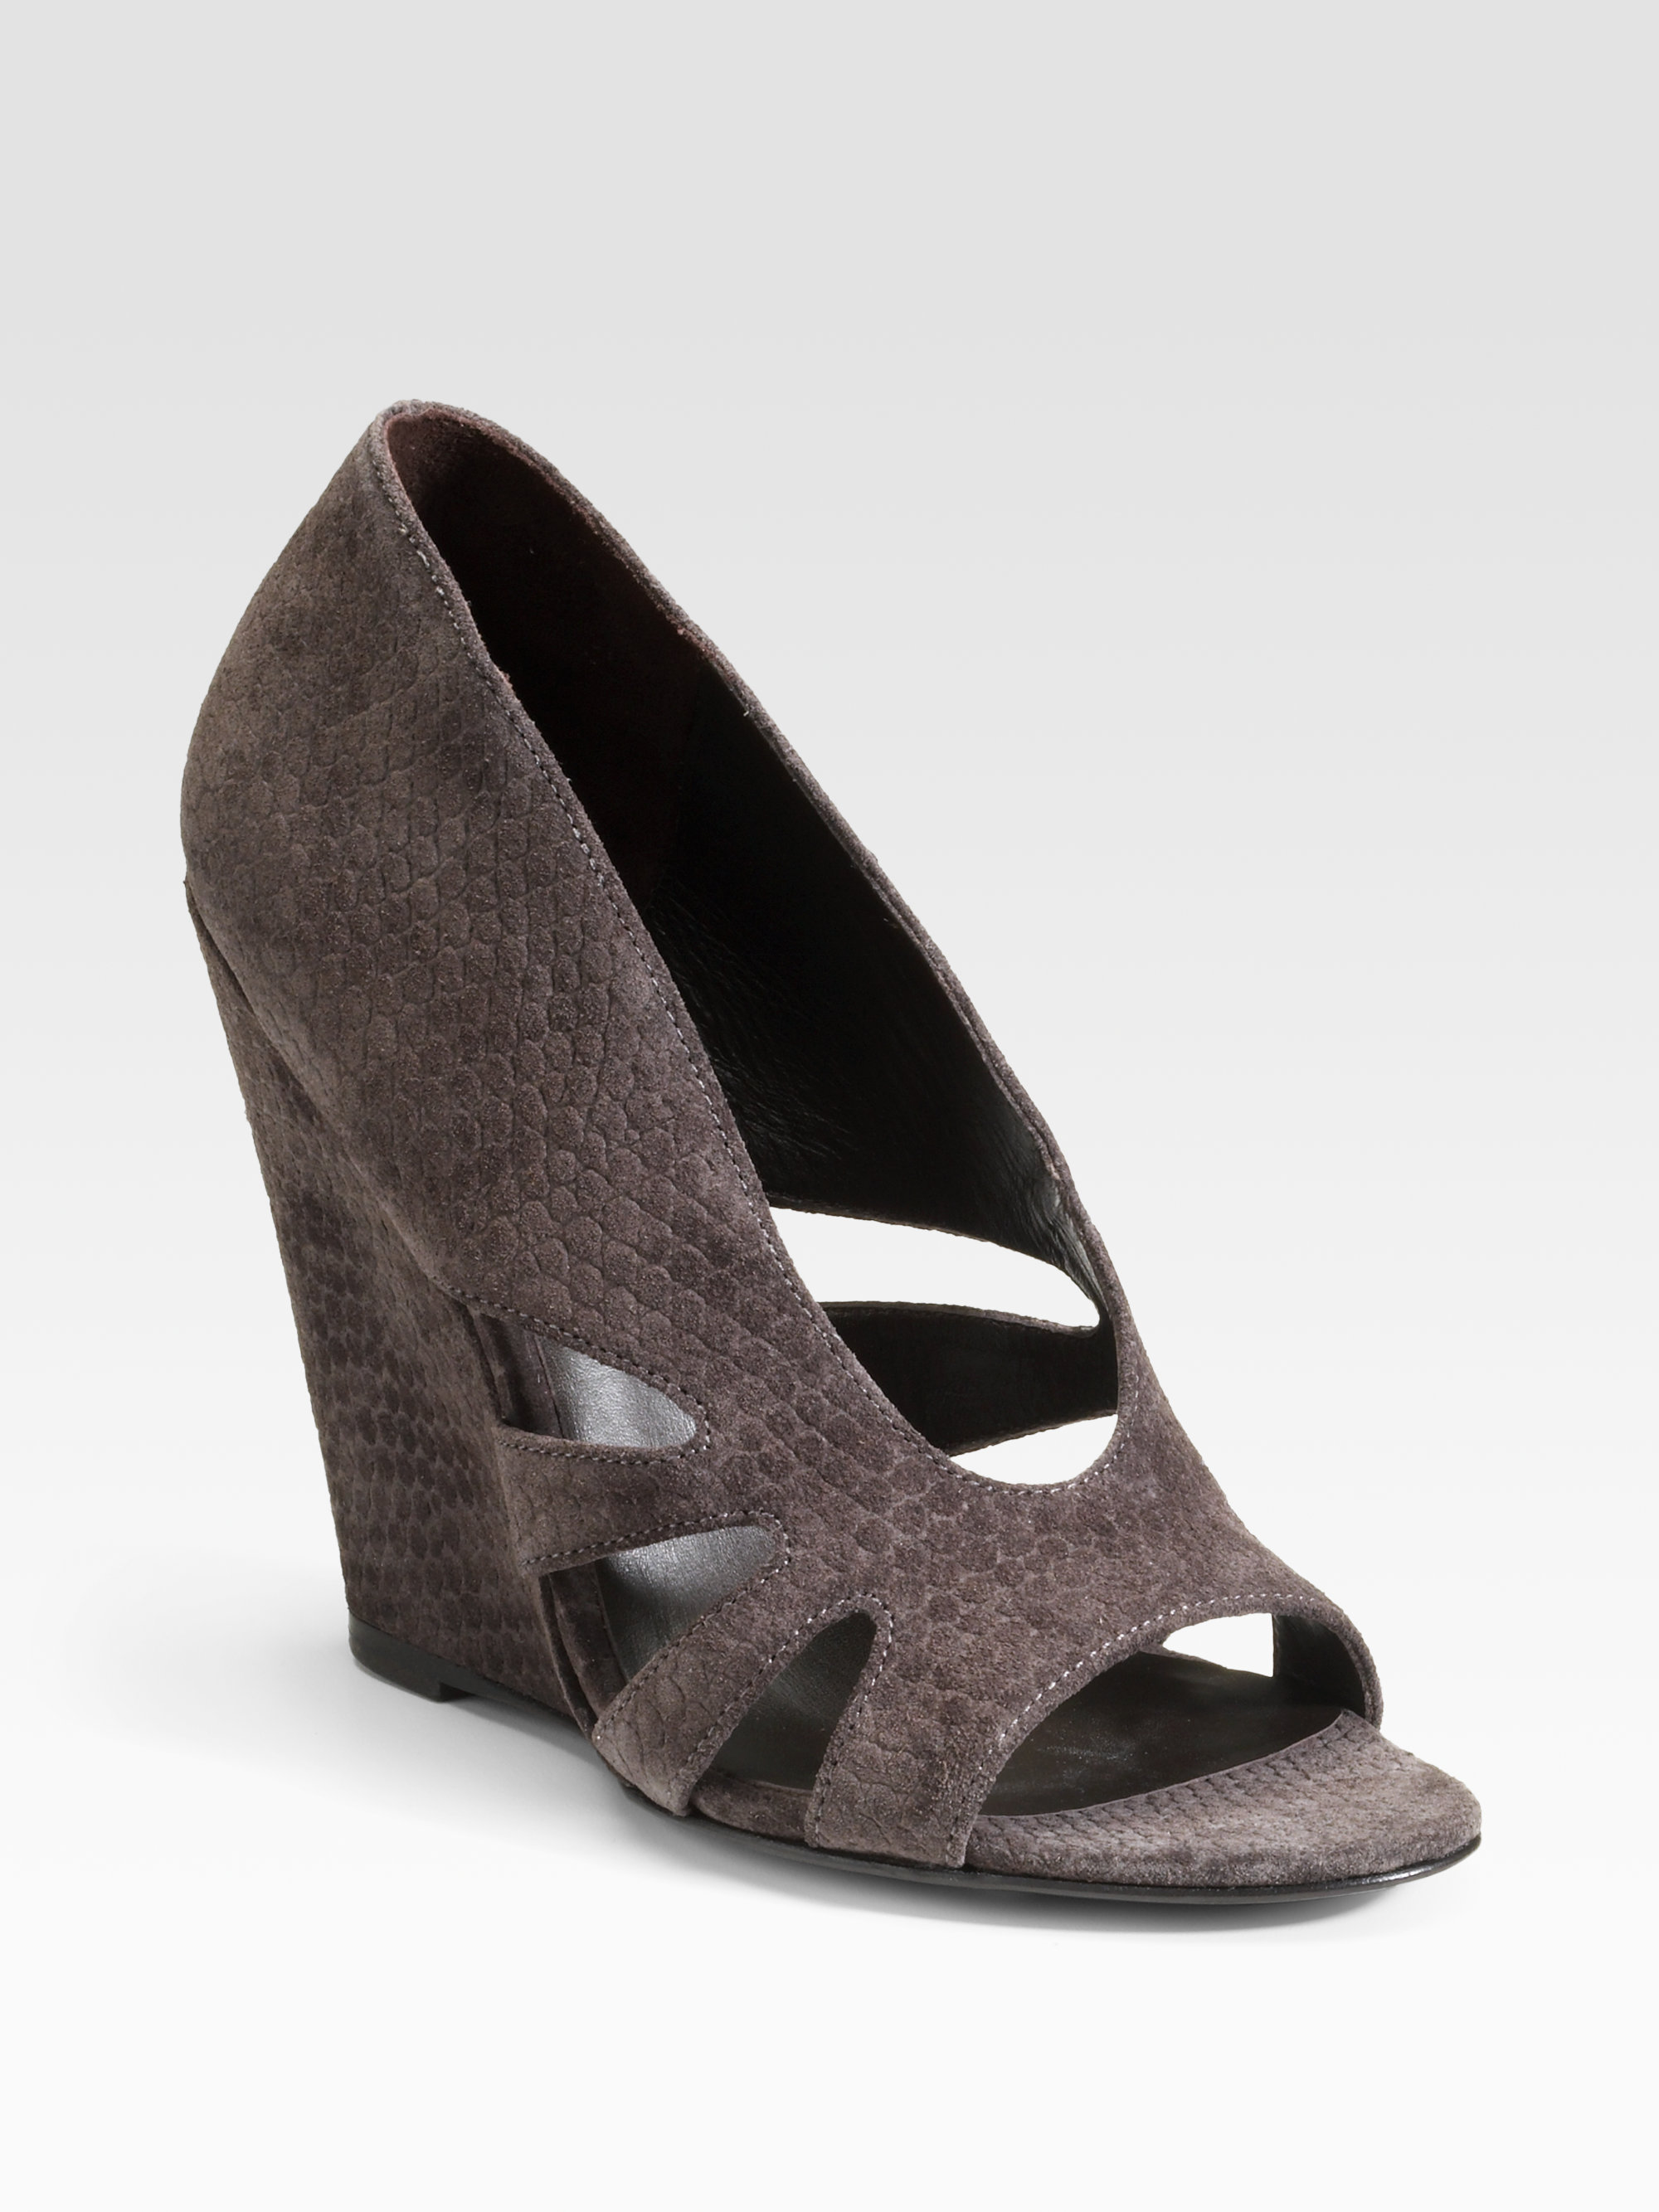 elizabeth and suede peeptoe wedge sandals in gray